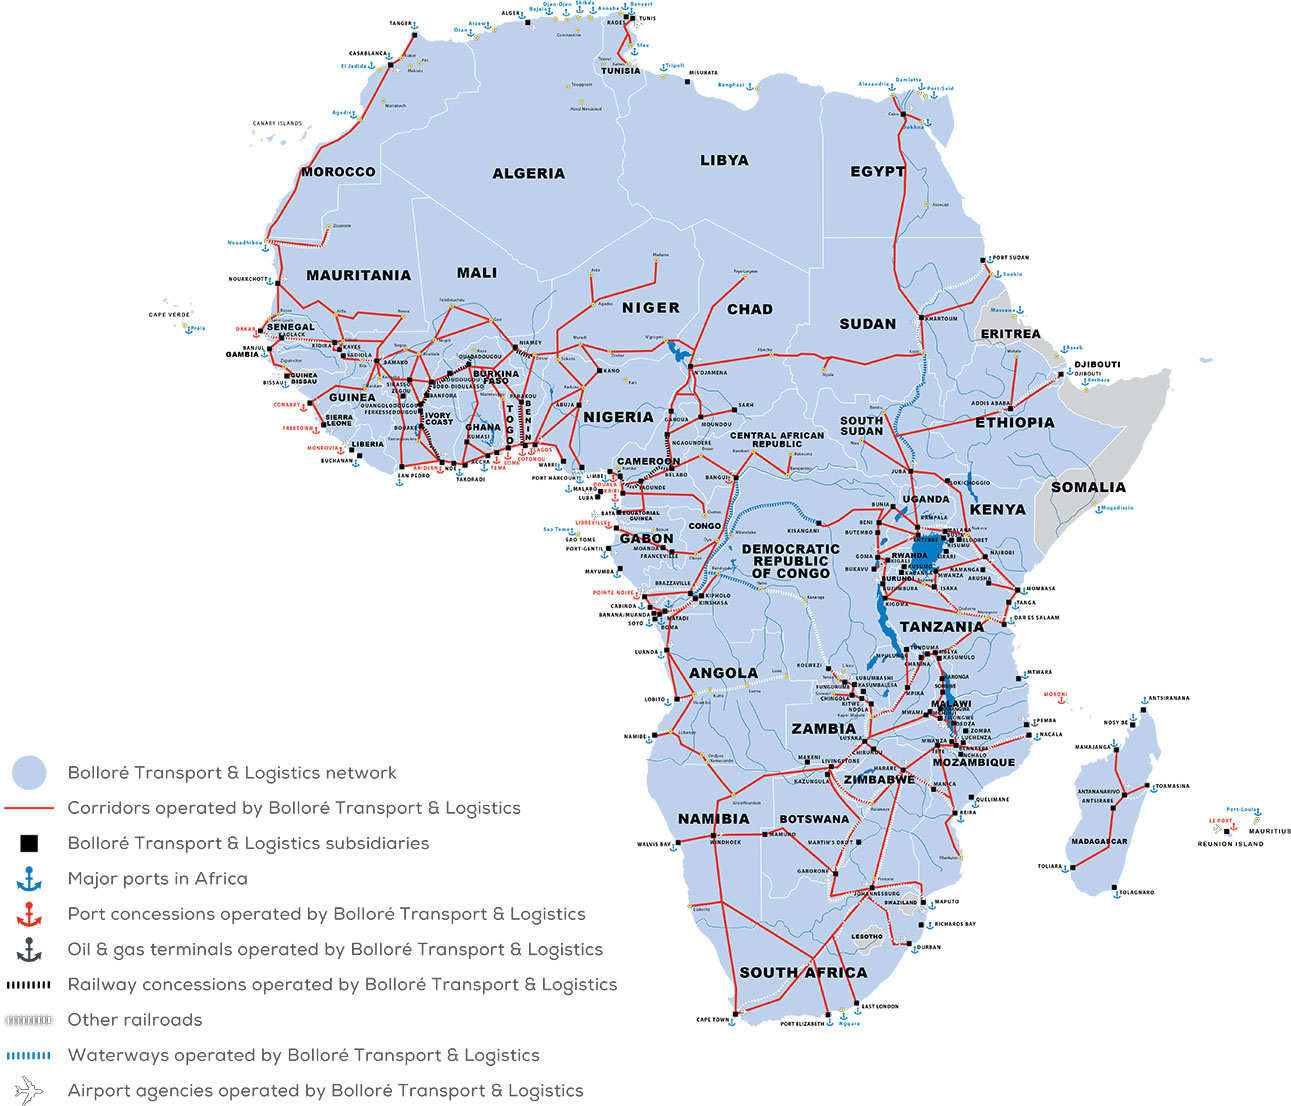 africa map with ports